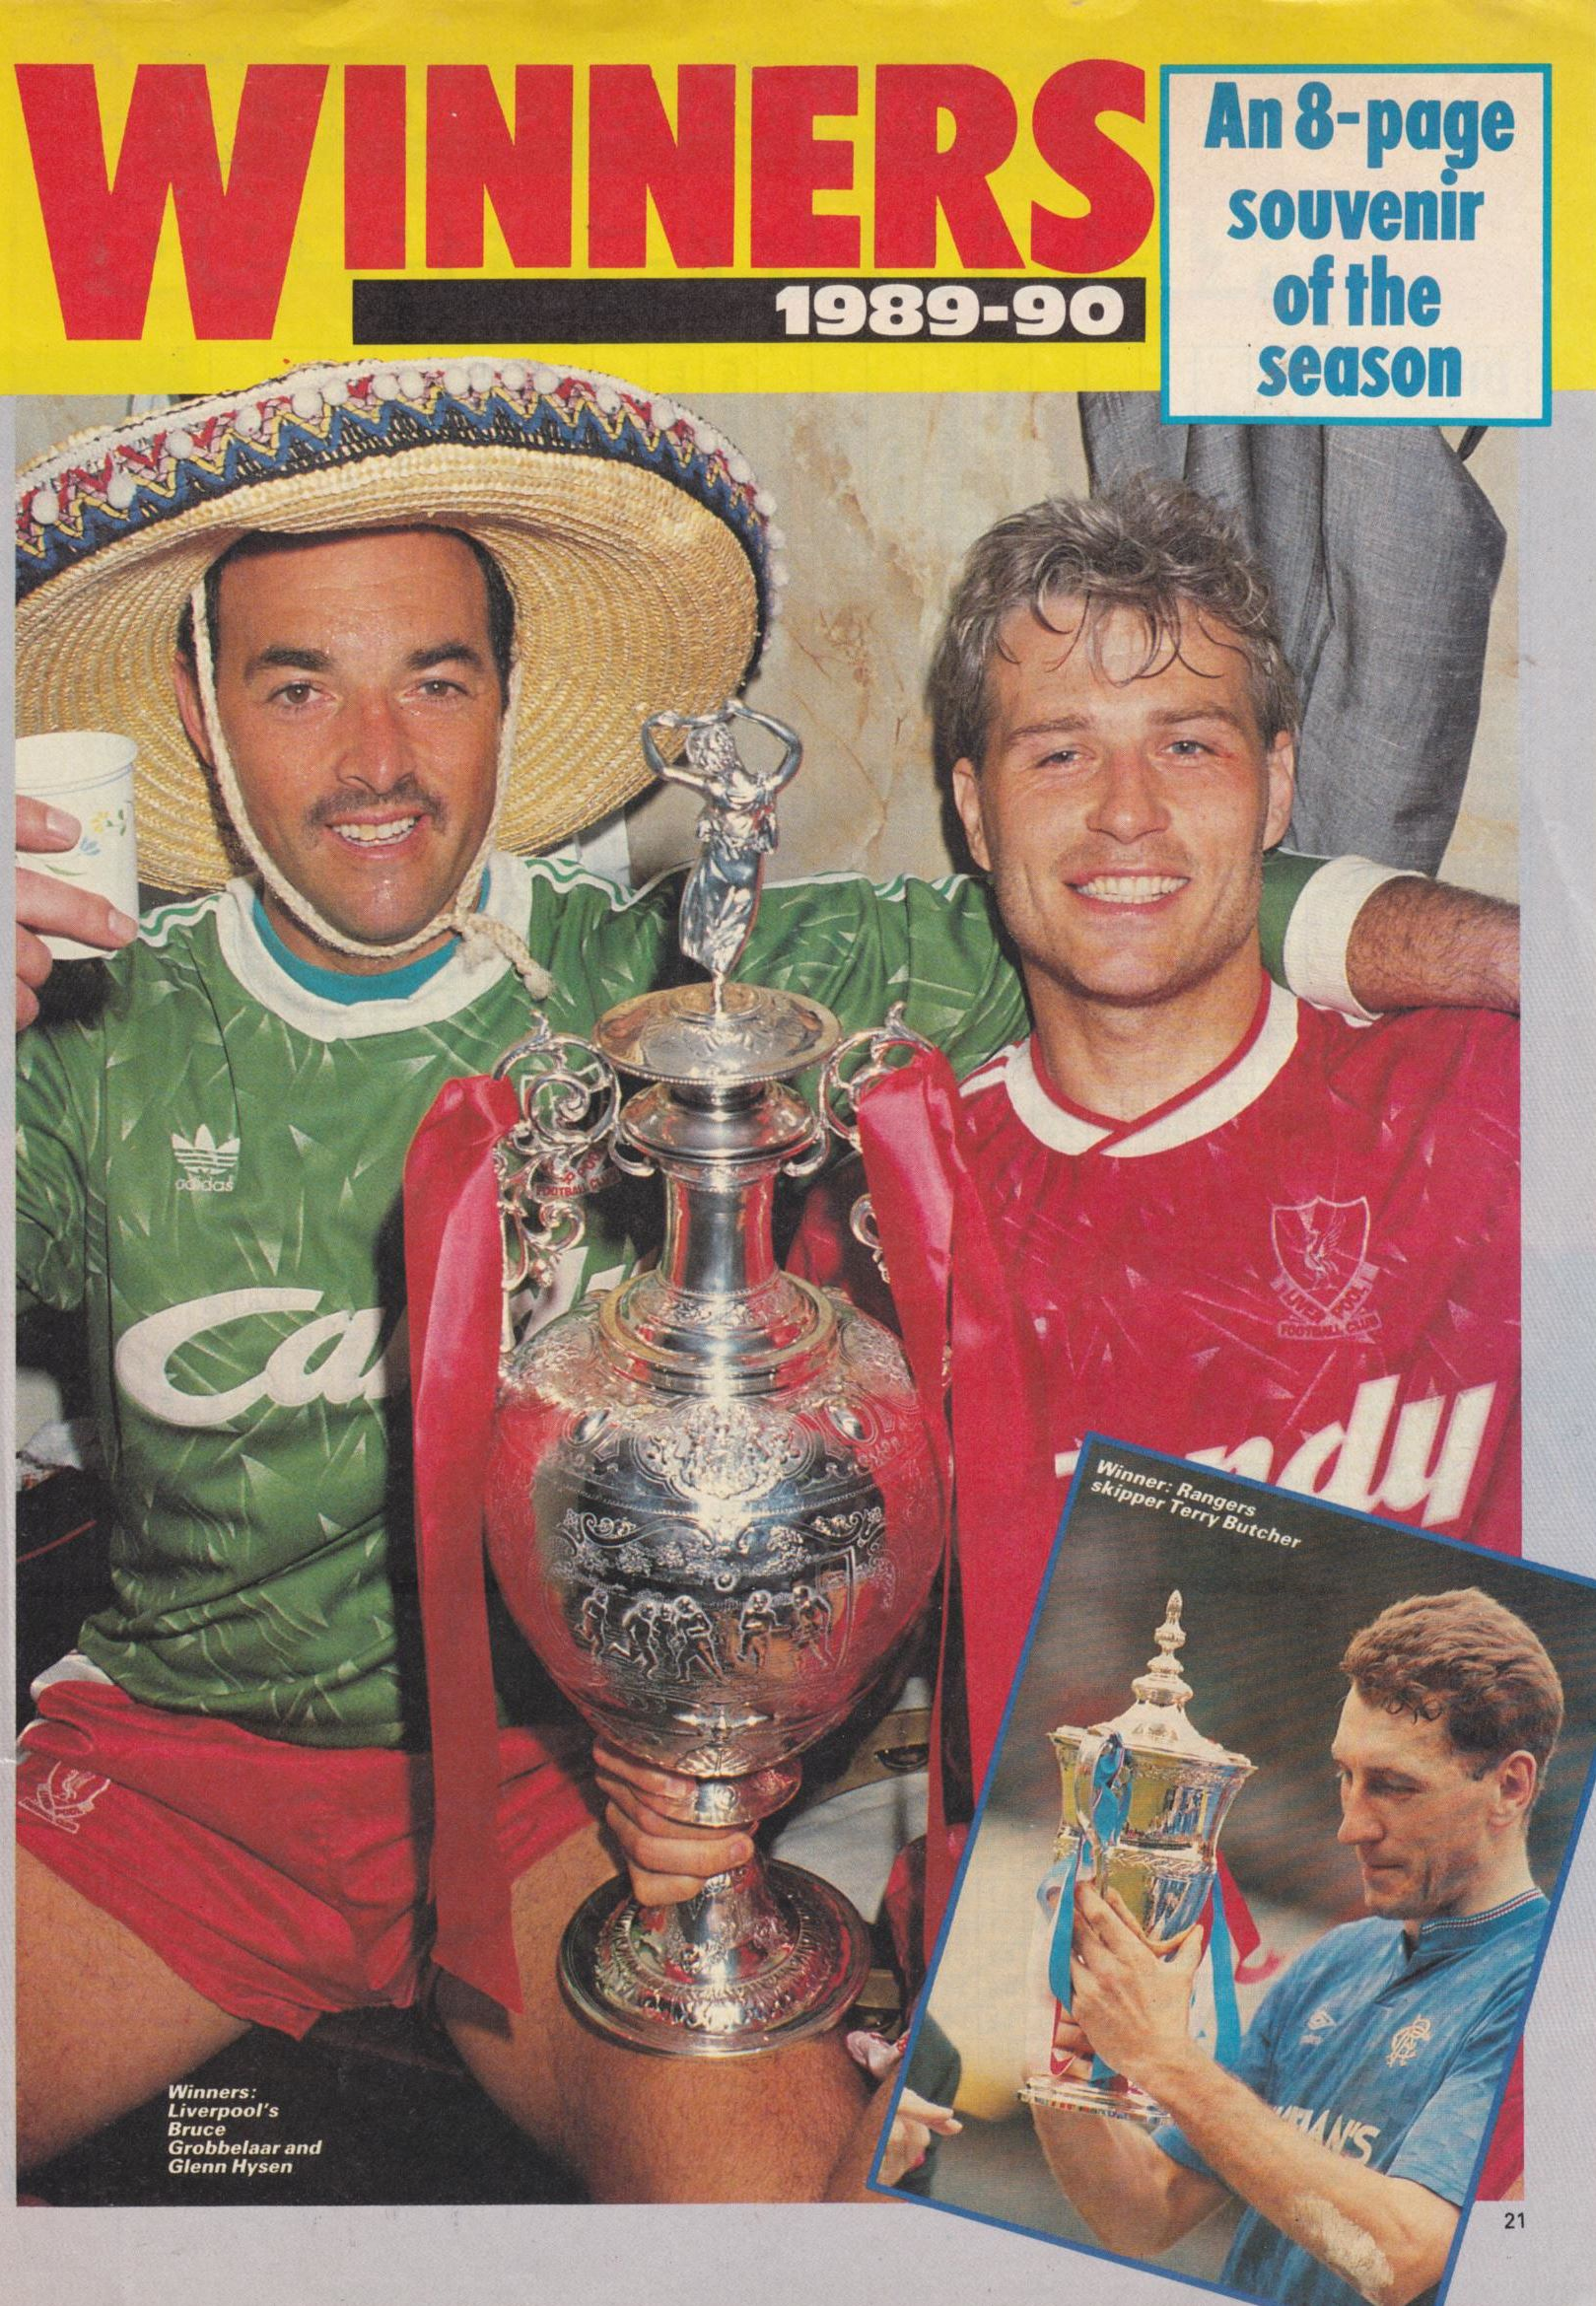 Grobbelaar and Hysén celebrating the 1990 title